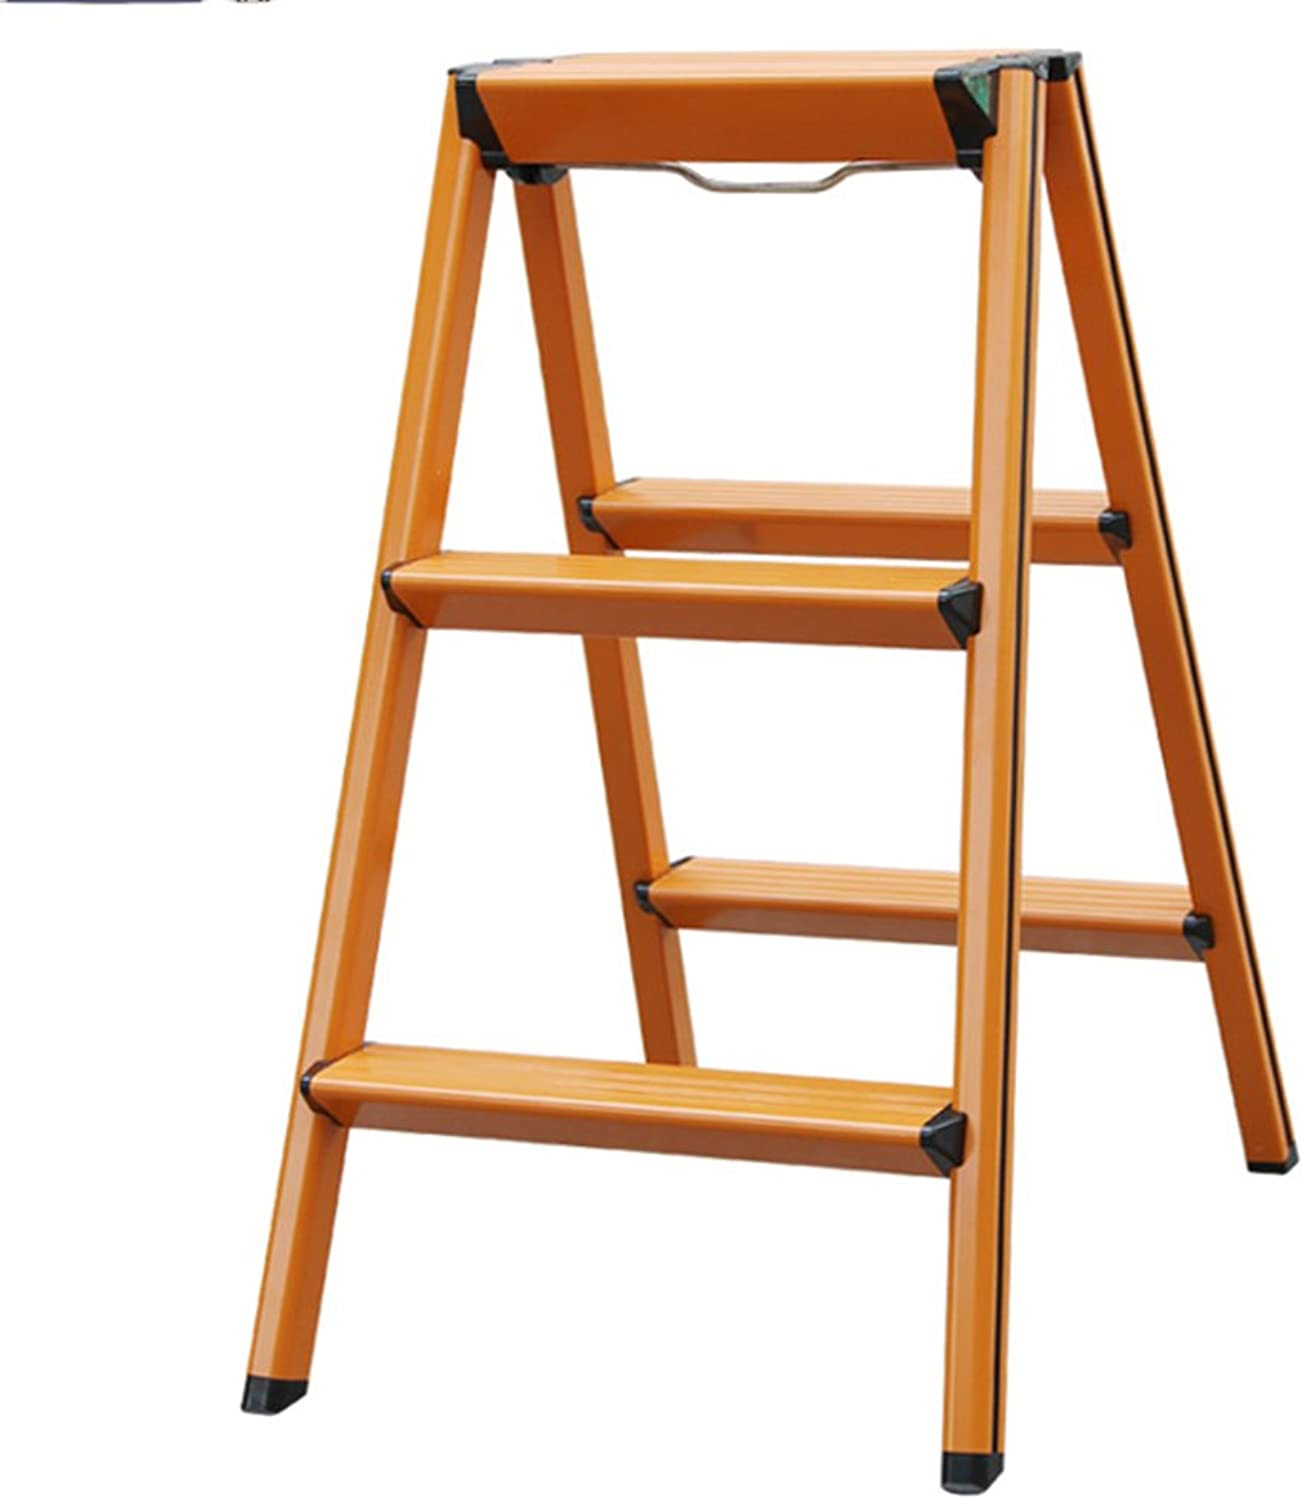 Foldable 3 Step Ladder Stool Multifunction Portable Dual-use Thicken Non-slip Aluminum Alloy 3 colors Height 70cm (color   orange)